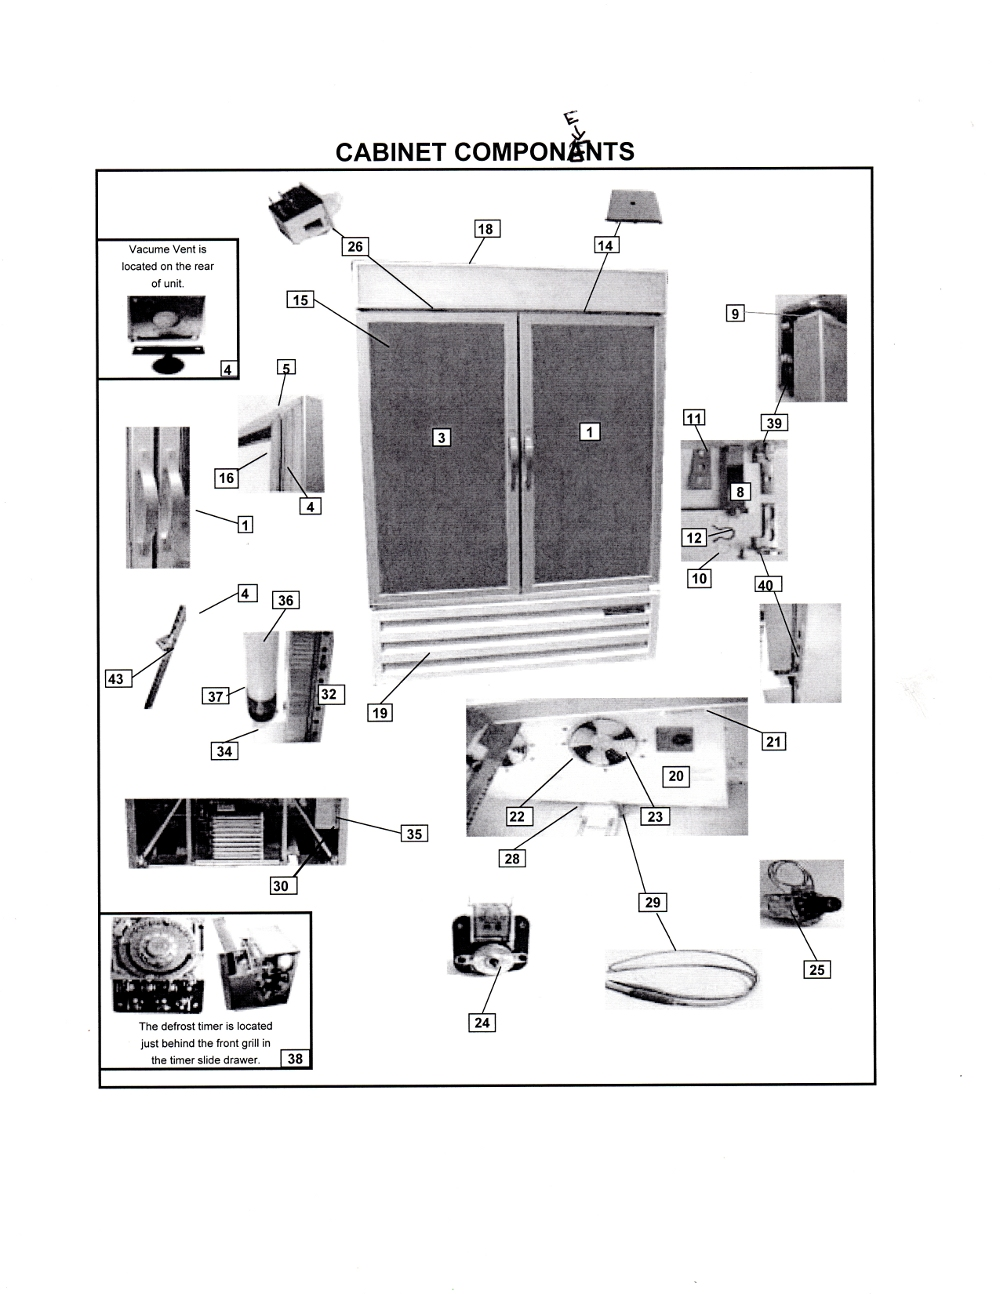 Kenmore Air Conditioner Diagram Not Lossing Wiring Sears Freezer True Refrigerators 831932 Problems Window Unit